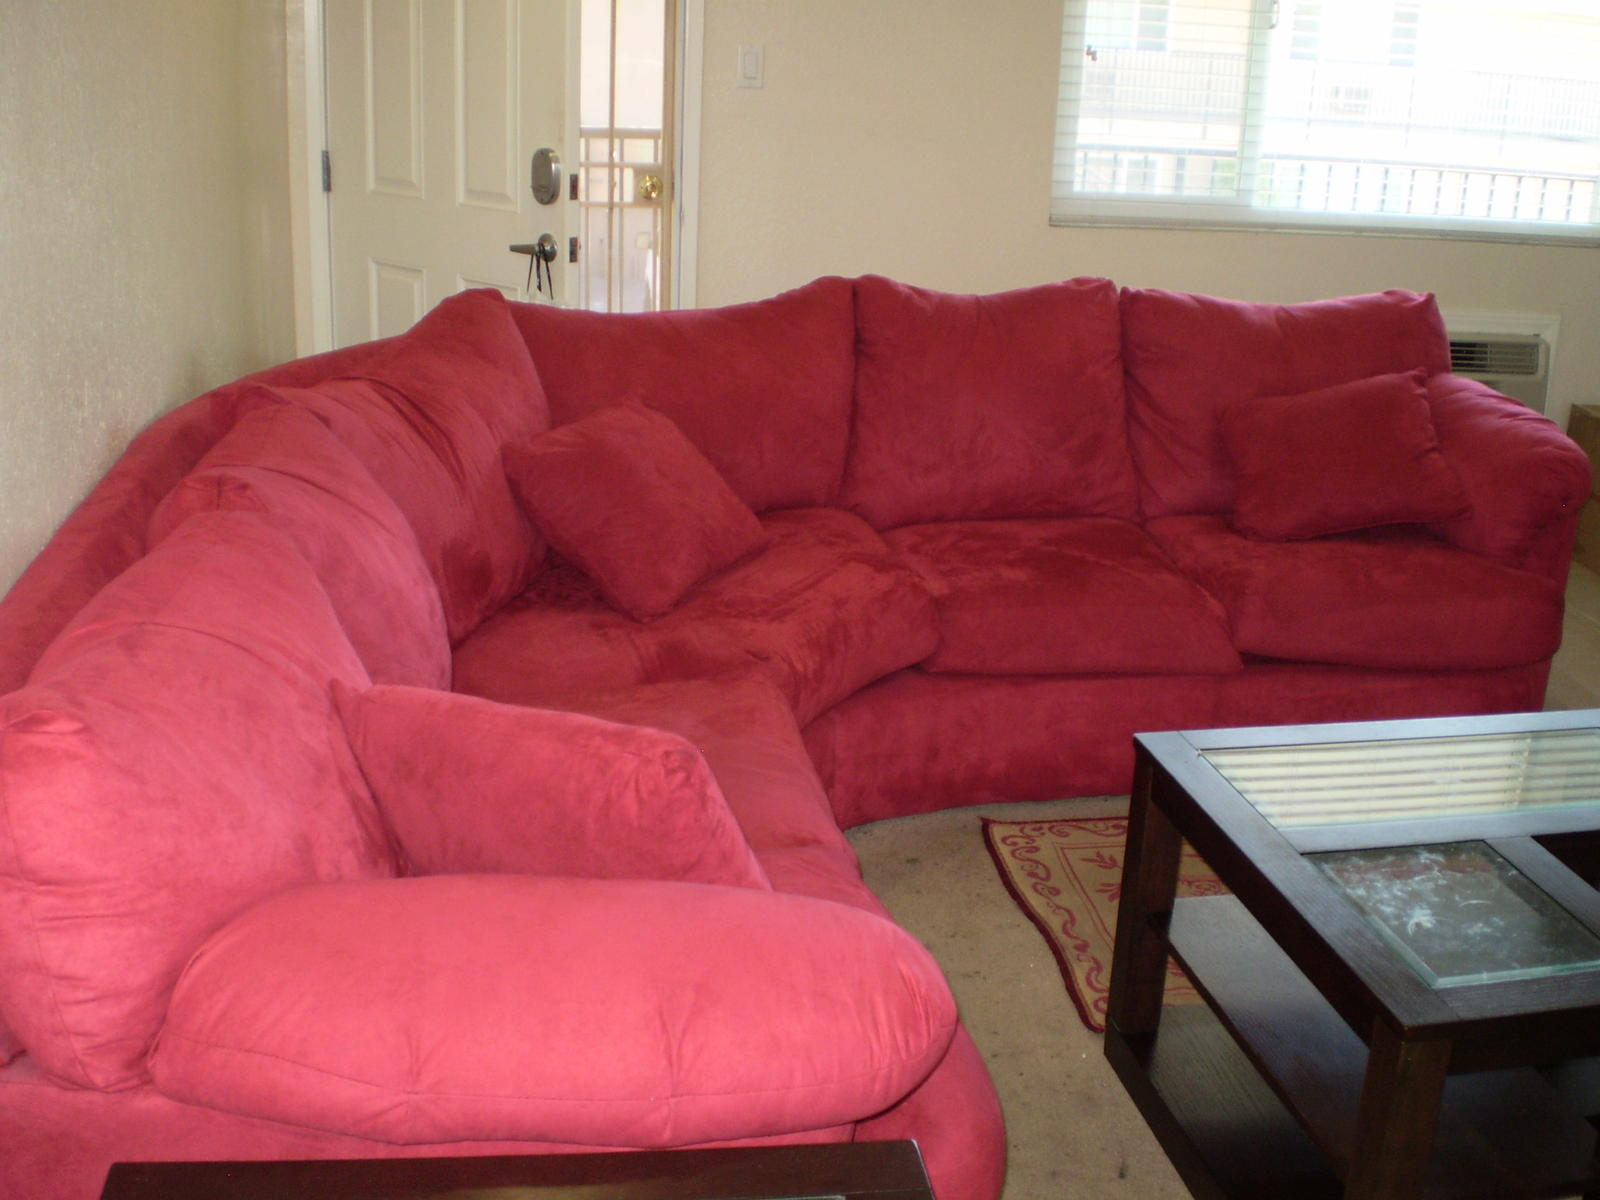 Merveilleux Sectional Sofa/refrig Near Long Beach Ca Move Sale 003